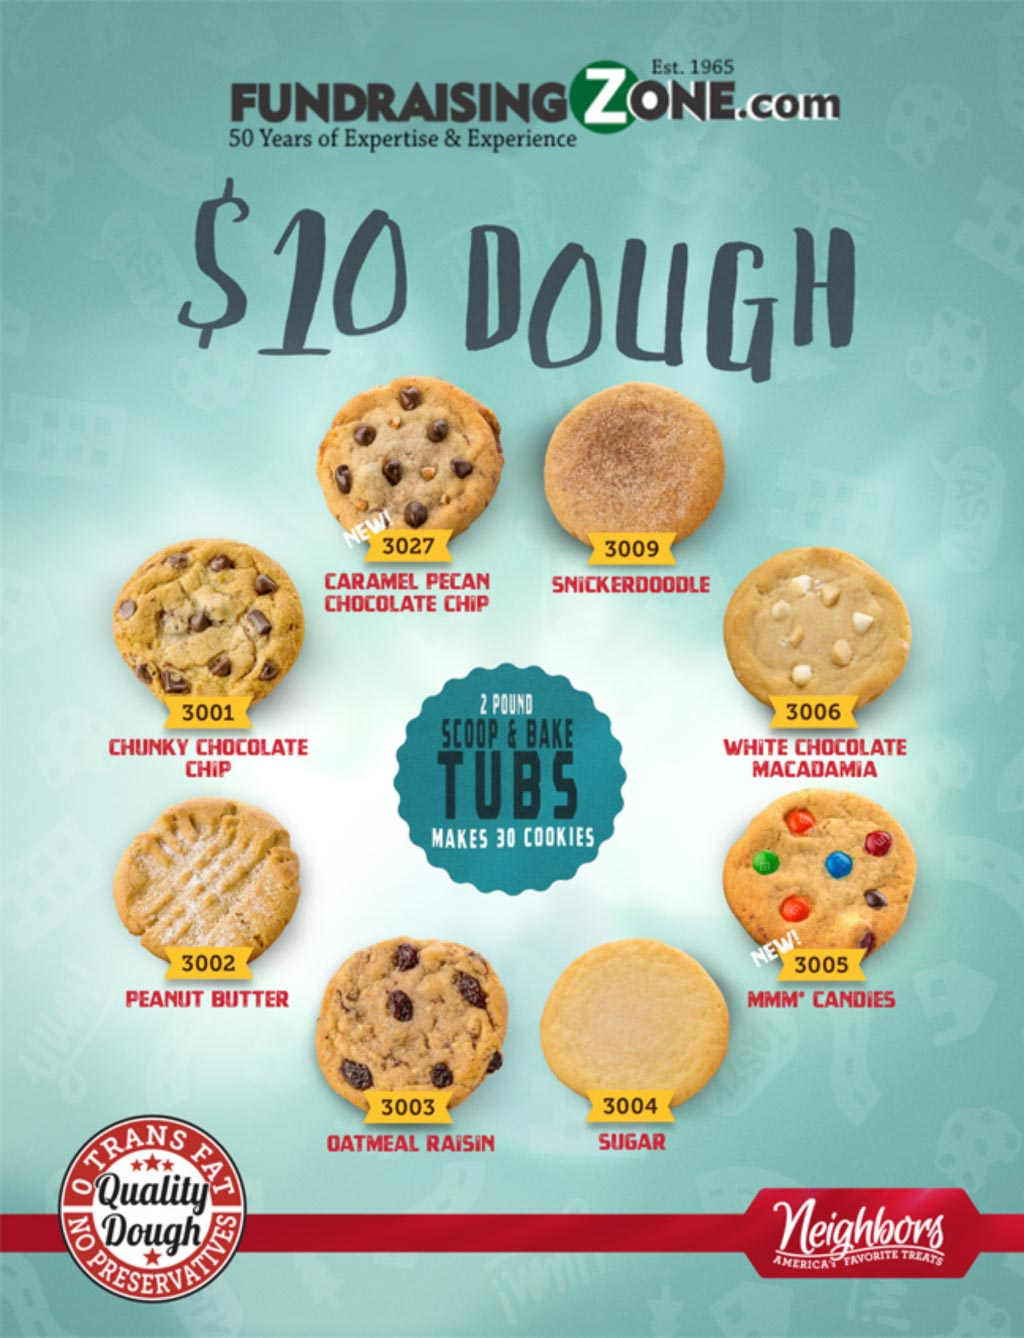 $10 Cookie Dough Fundraiser Ideas